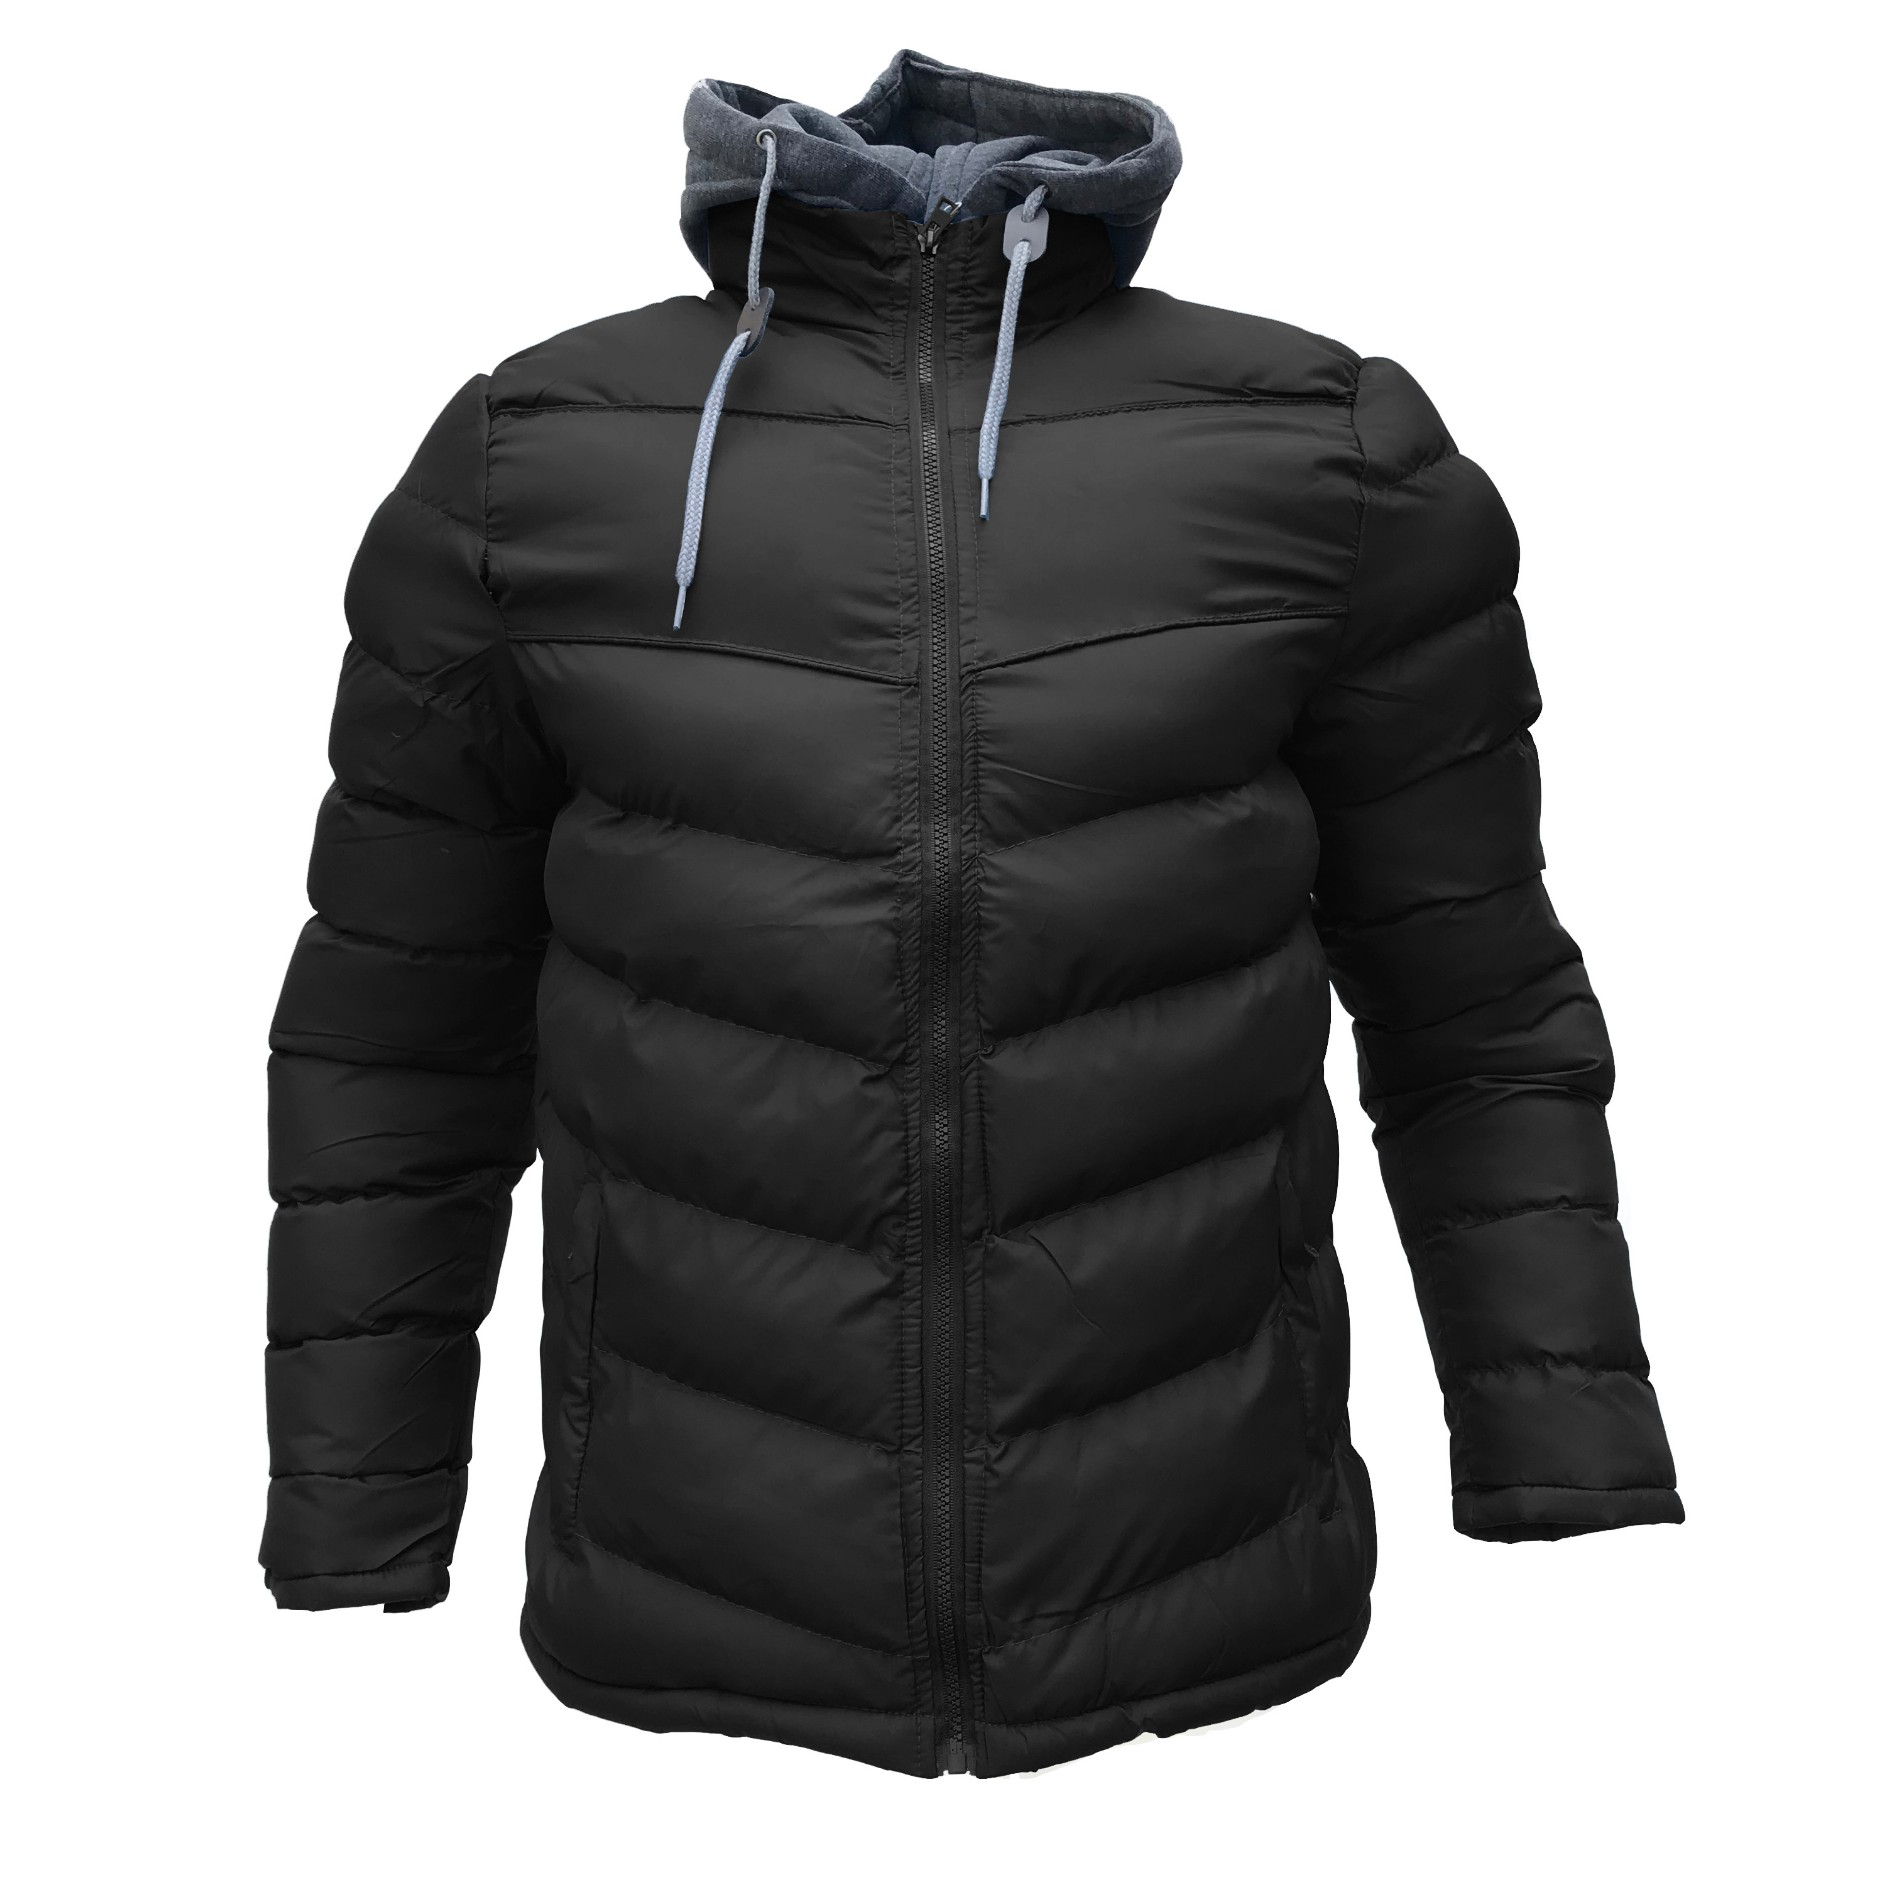 Men's High Quality Hooded Padded Jackets Winter Jackets Manufacturers, Men's High Quality Hooded Padded Jackets Winter Jackets Factory, Supply Men's High Quality Hooded Padded Jackets Winter Jackets